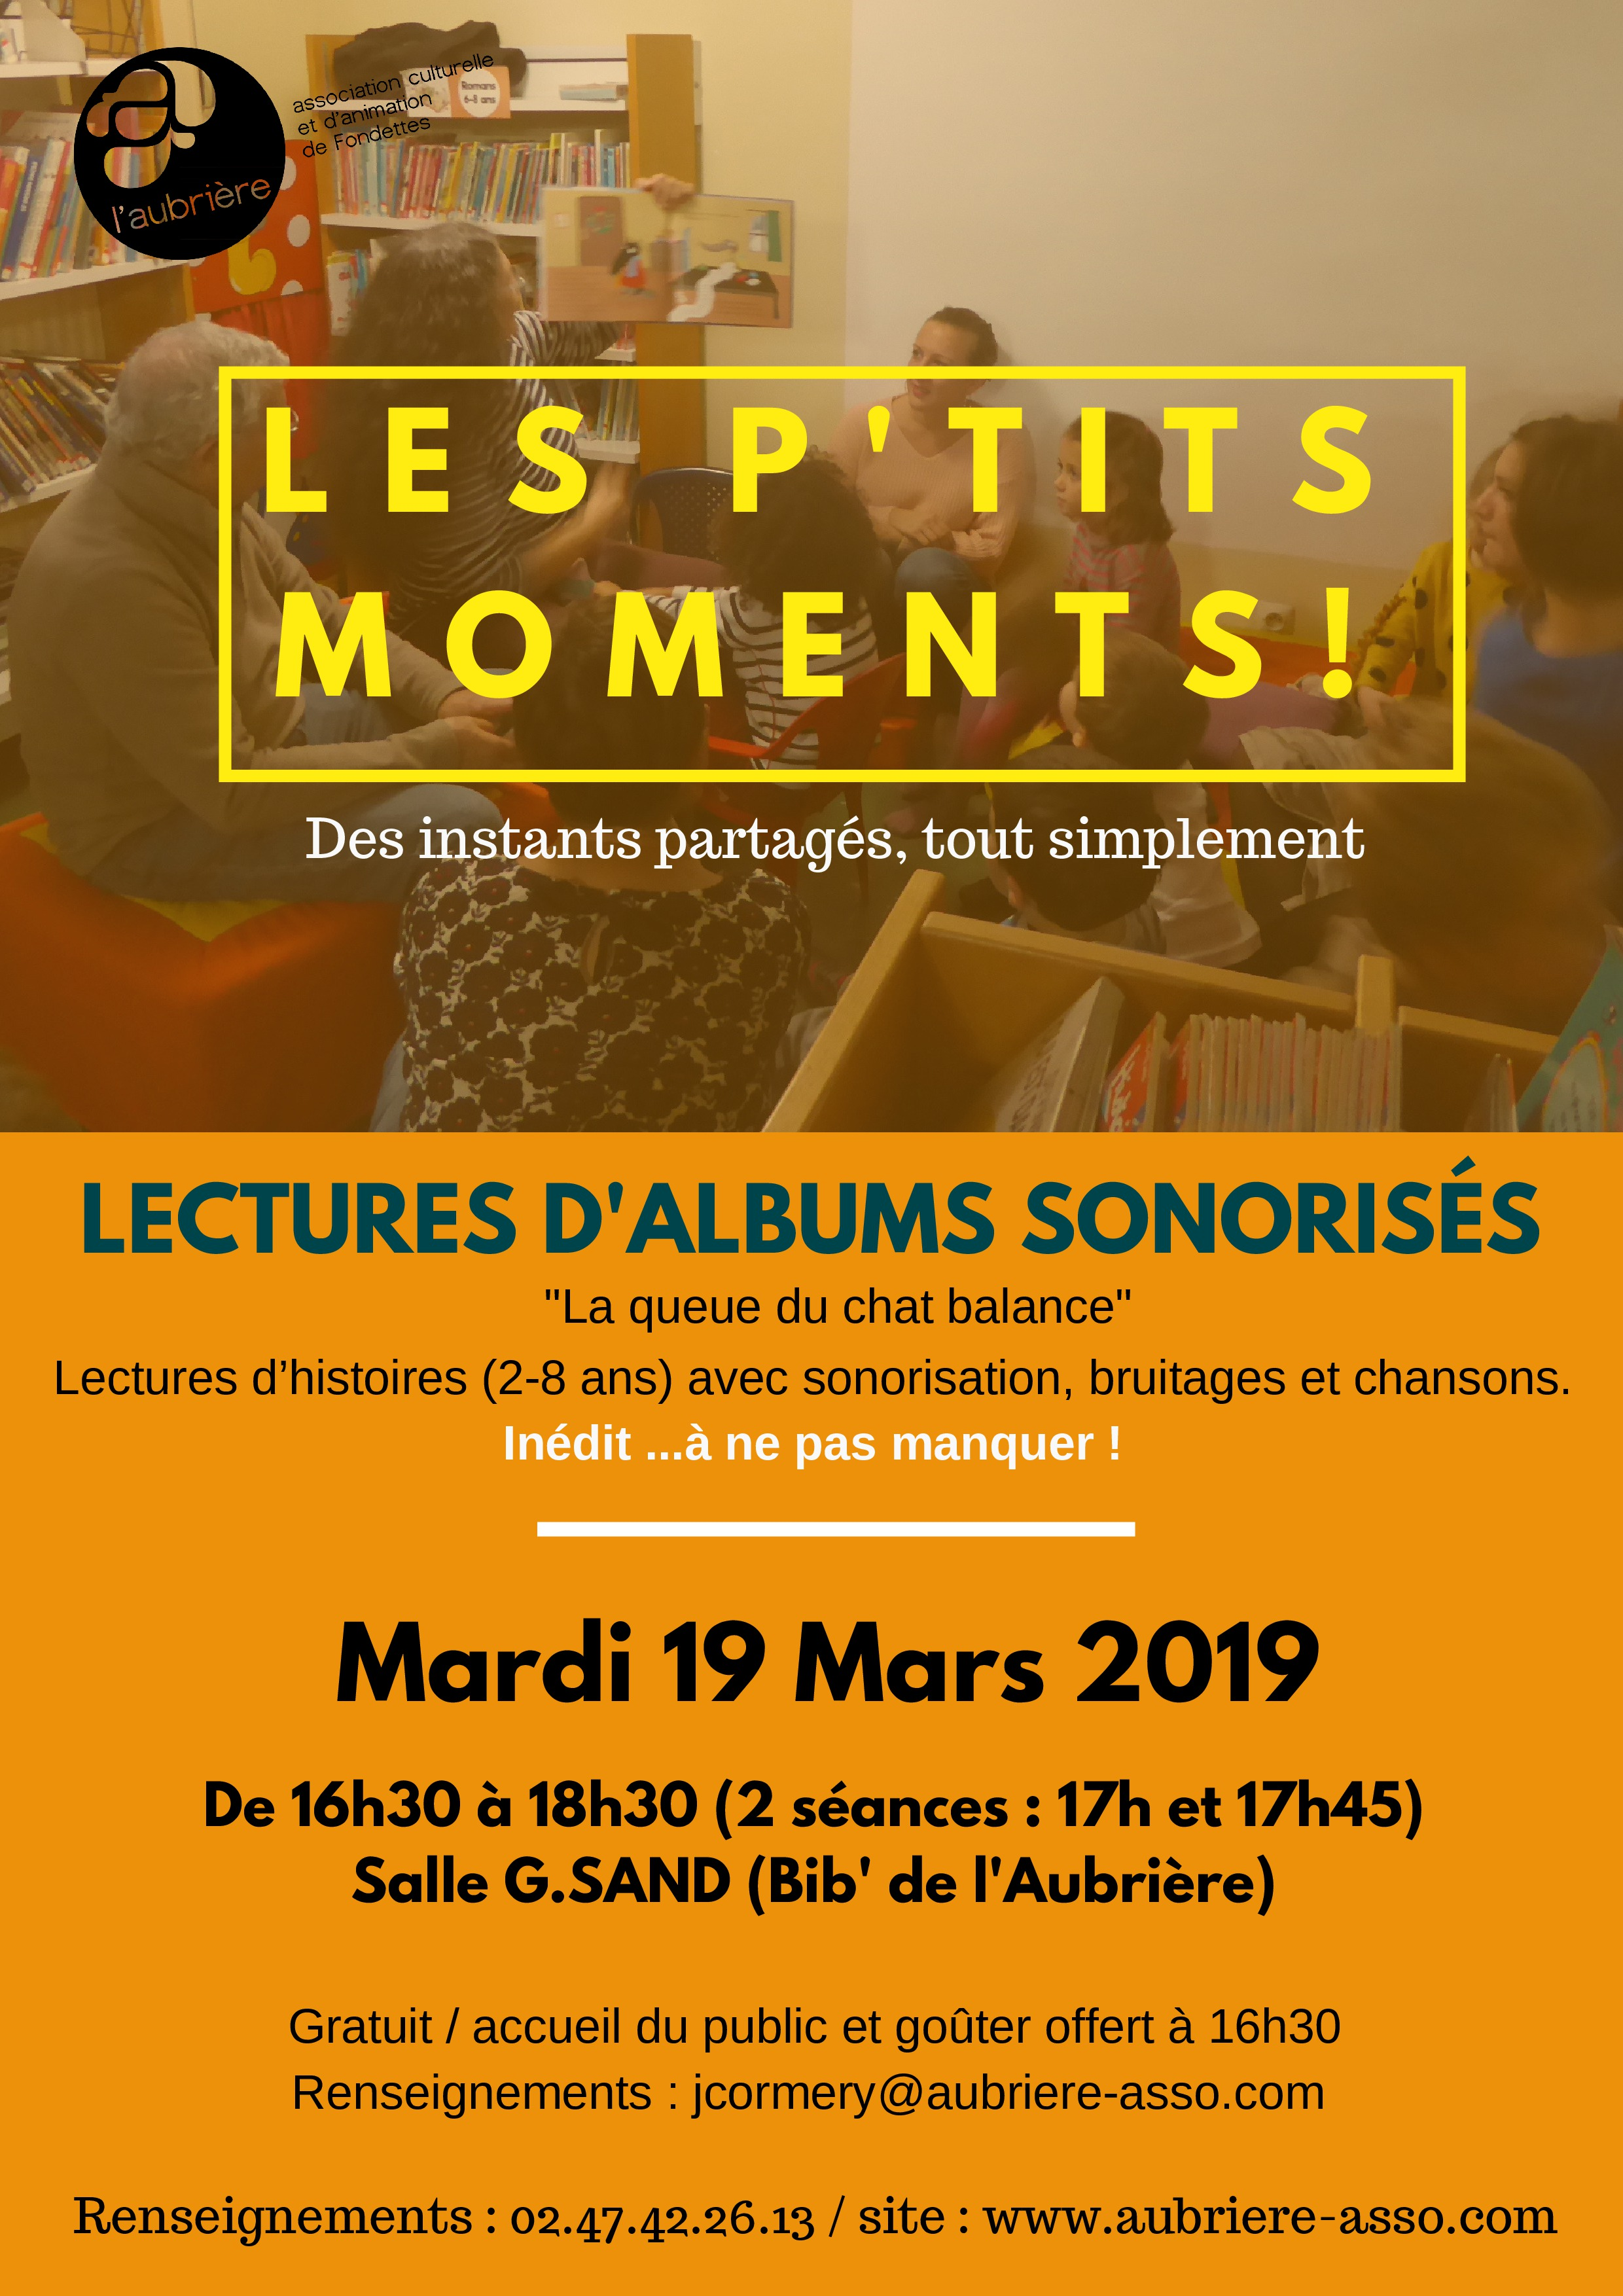 Les petits moments (6)-page-0